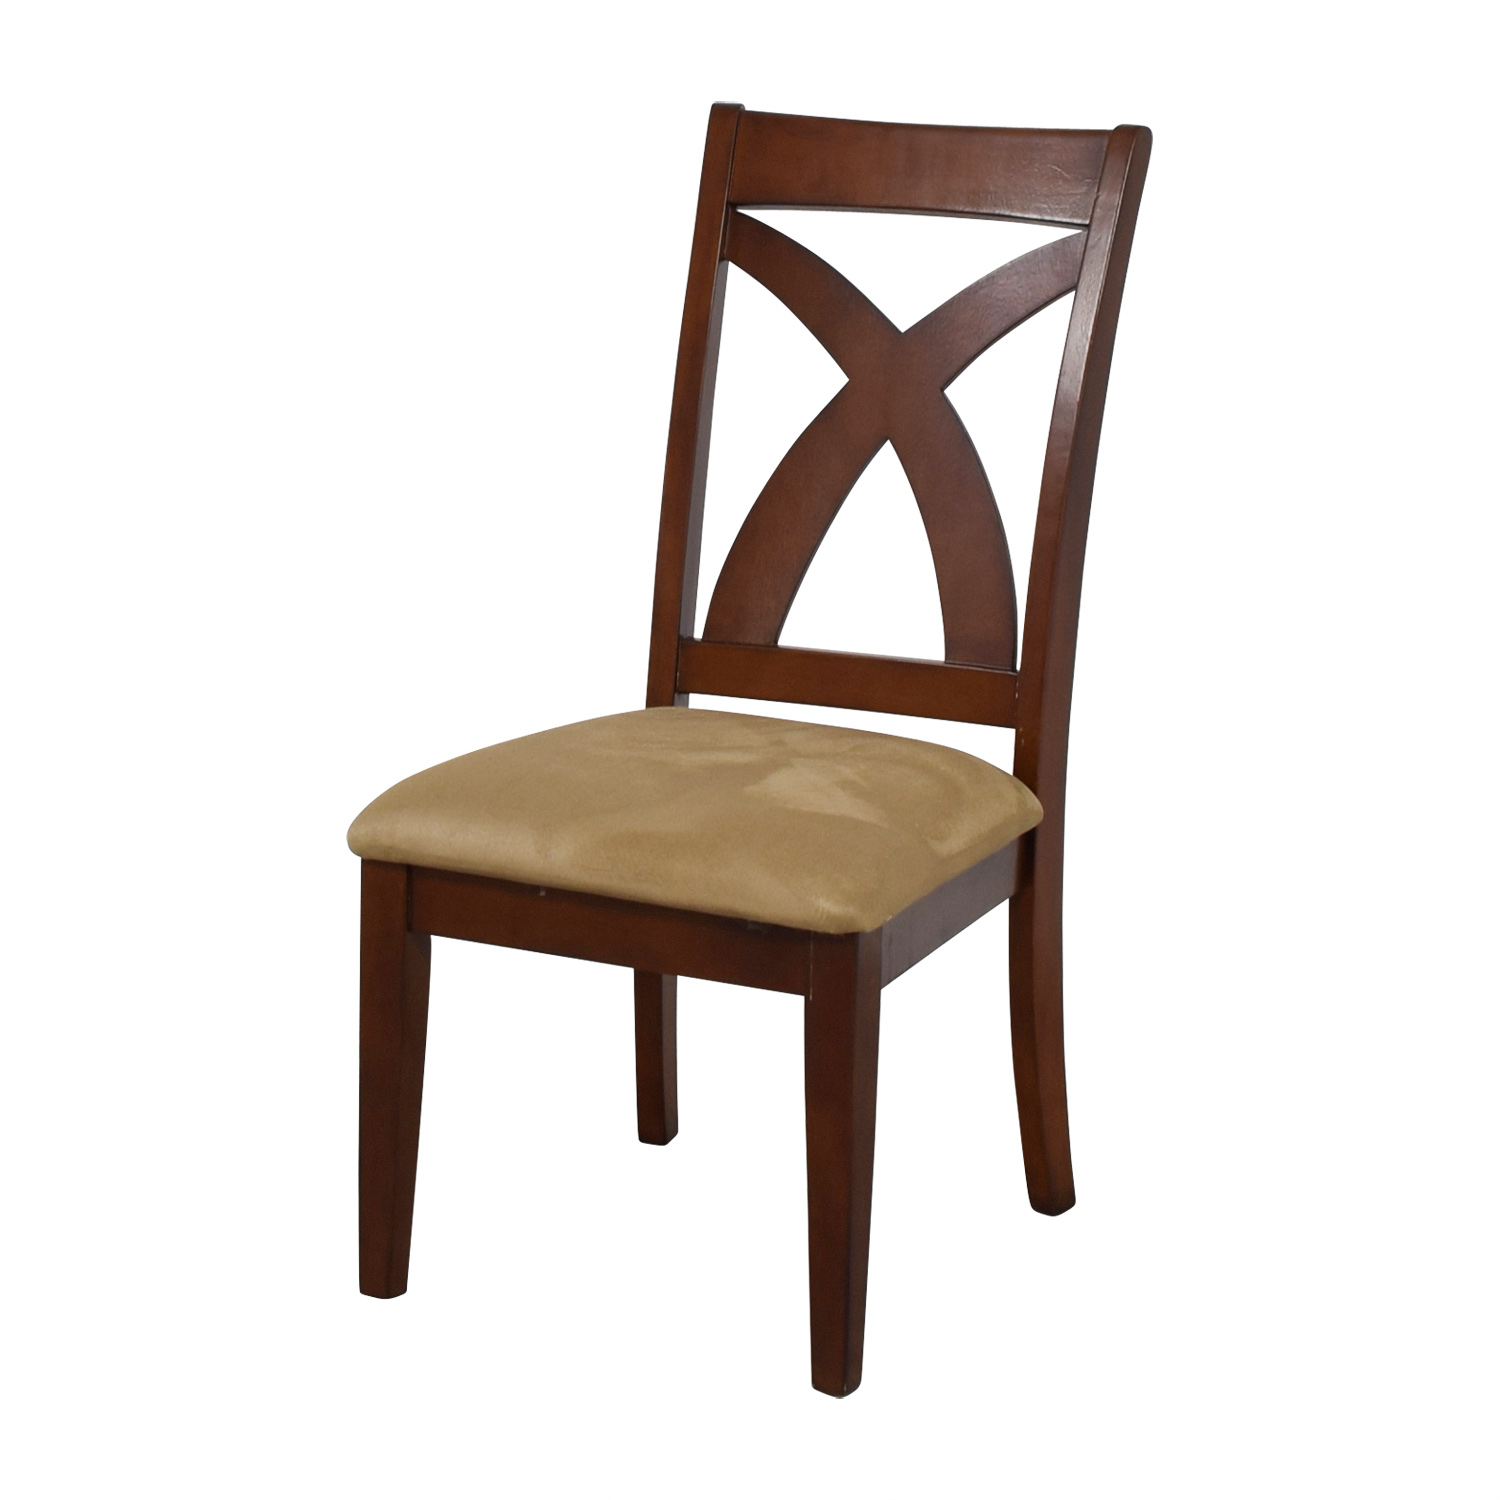 84% OFF Solid Wood Chair with Cross Back& Padded Seat Chairs